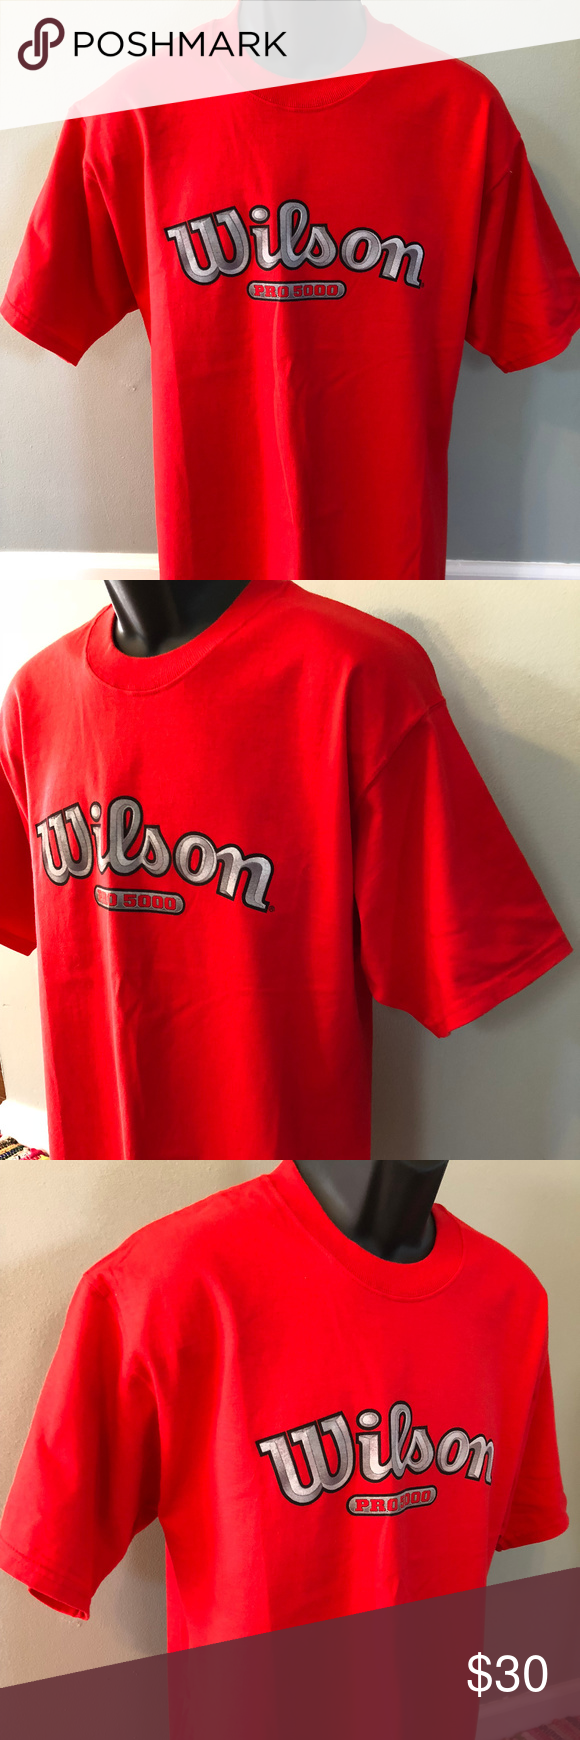 90s Wilson Pro 5000 Shirt Golf Tennis Volleyball Vintage 1990s Wilson Pro 5000 Tee Shirt Classic Athletic Shirt Thick Q Shirts Athletic Shirts Vintage Shirts